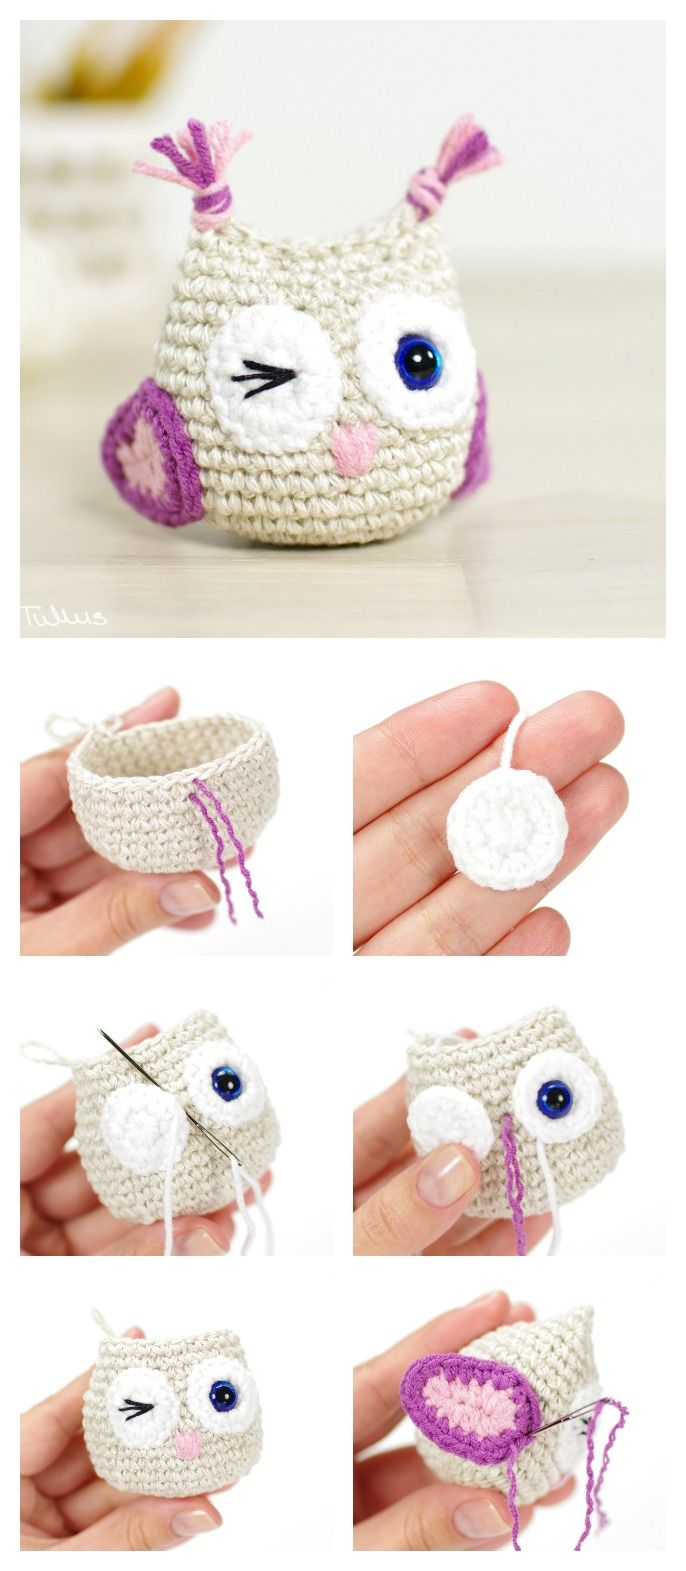 DIY Crocheted Owls with Free Patterns | Crochê | Pinterest | Tejido ...